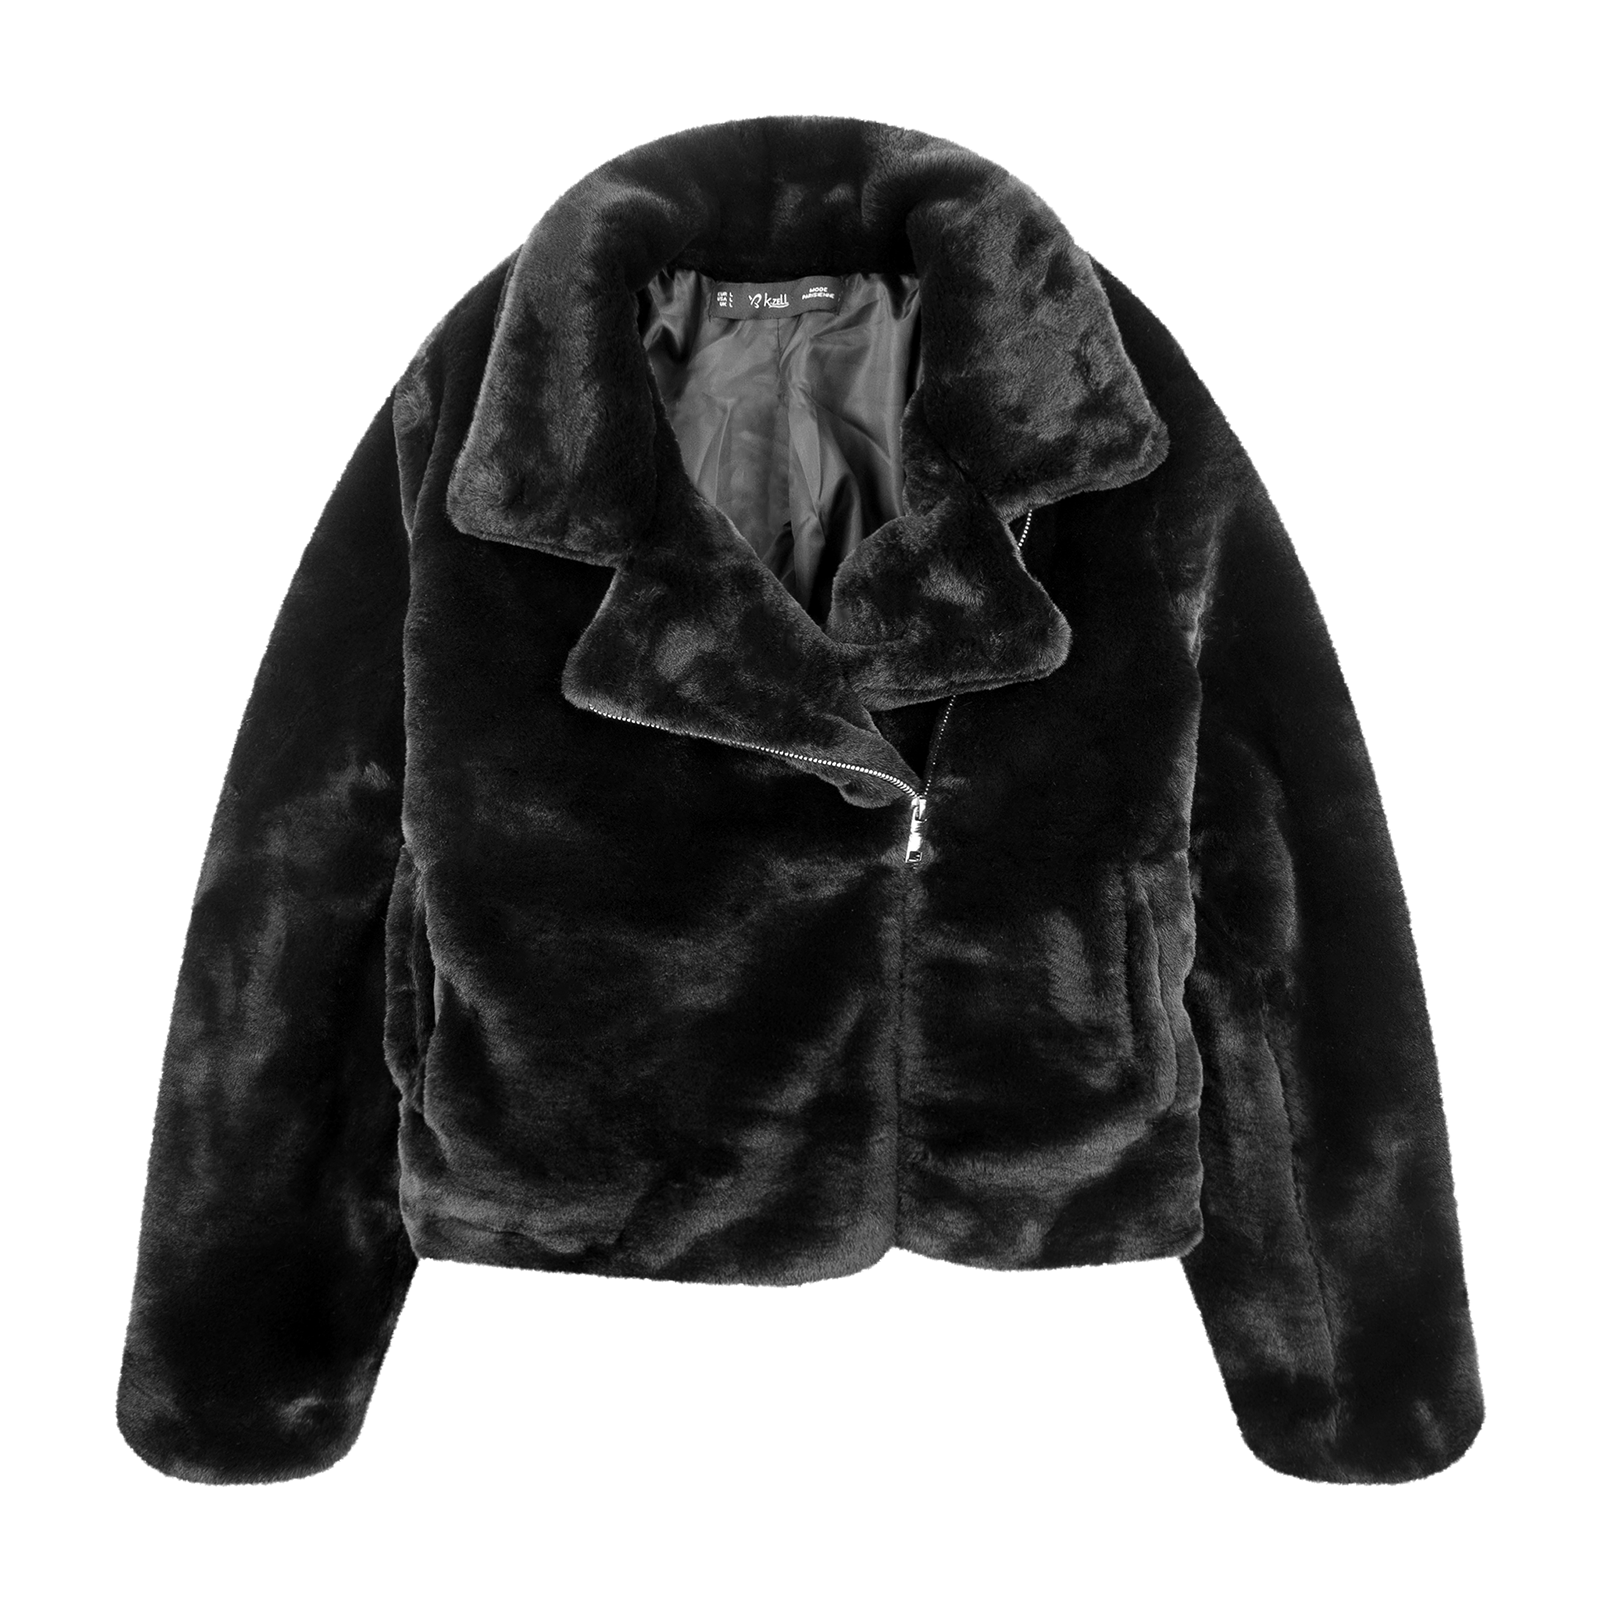 Fur jacket product picture